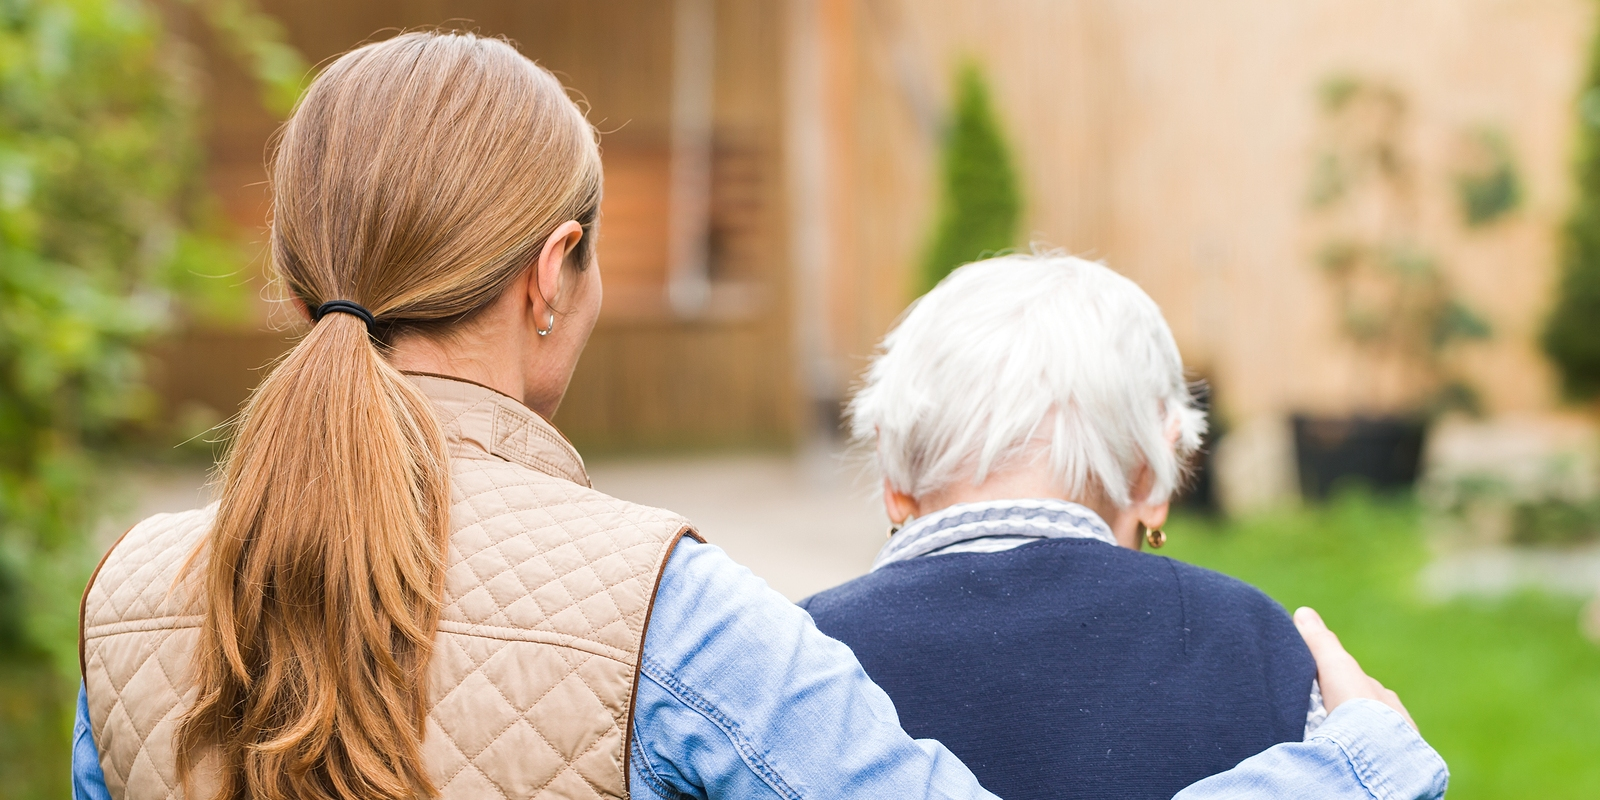 What Are the Duties and Responsibilities of a Dementia Caregiver